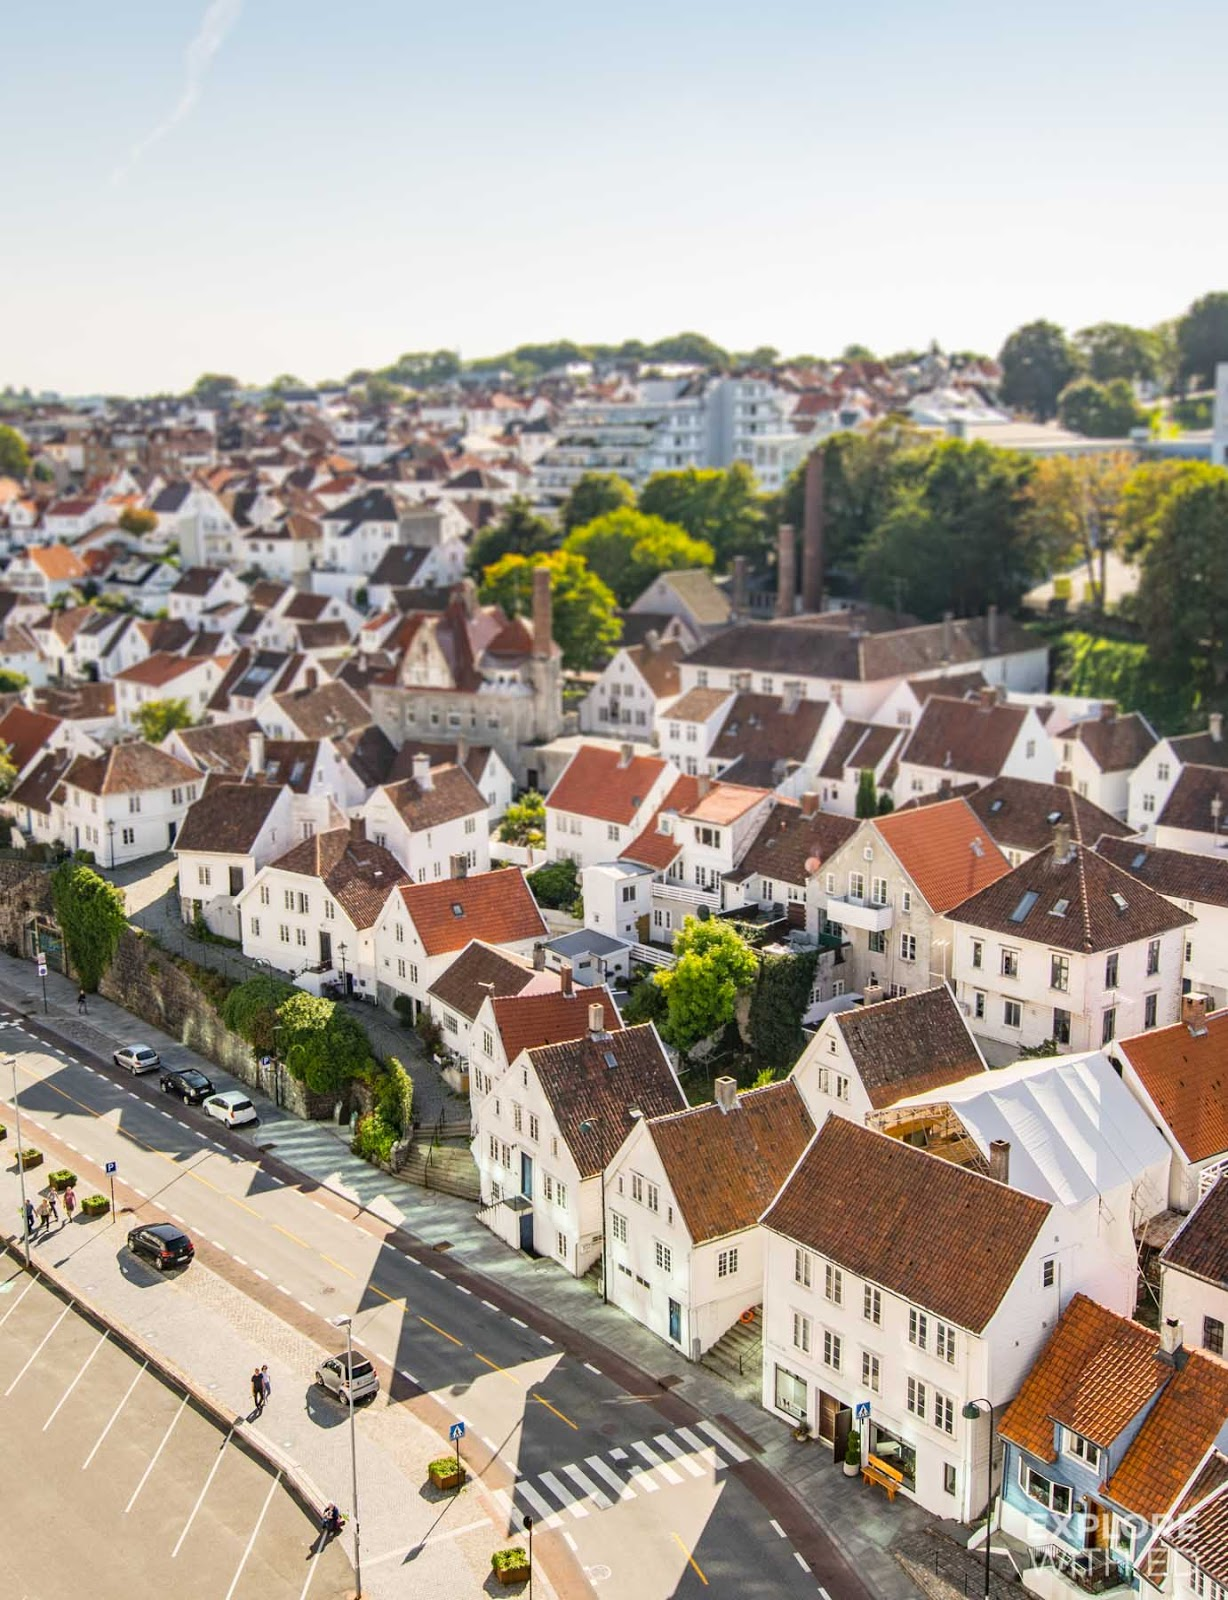 Overlooking the old town of Stavanger with over 170 wooden houses